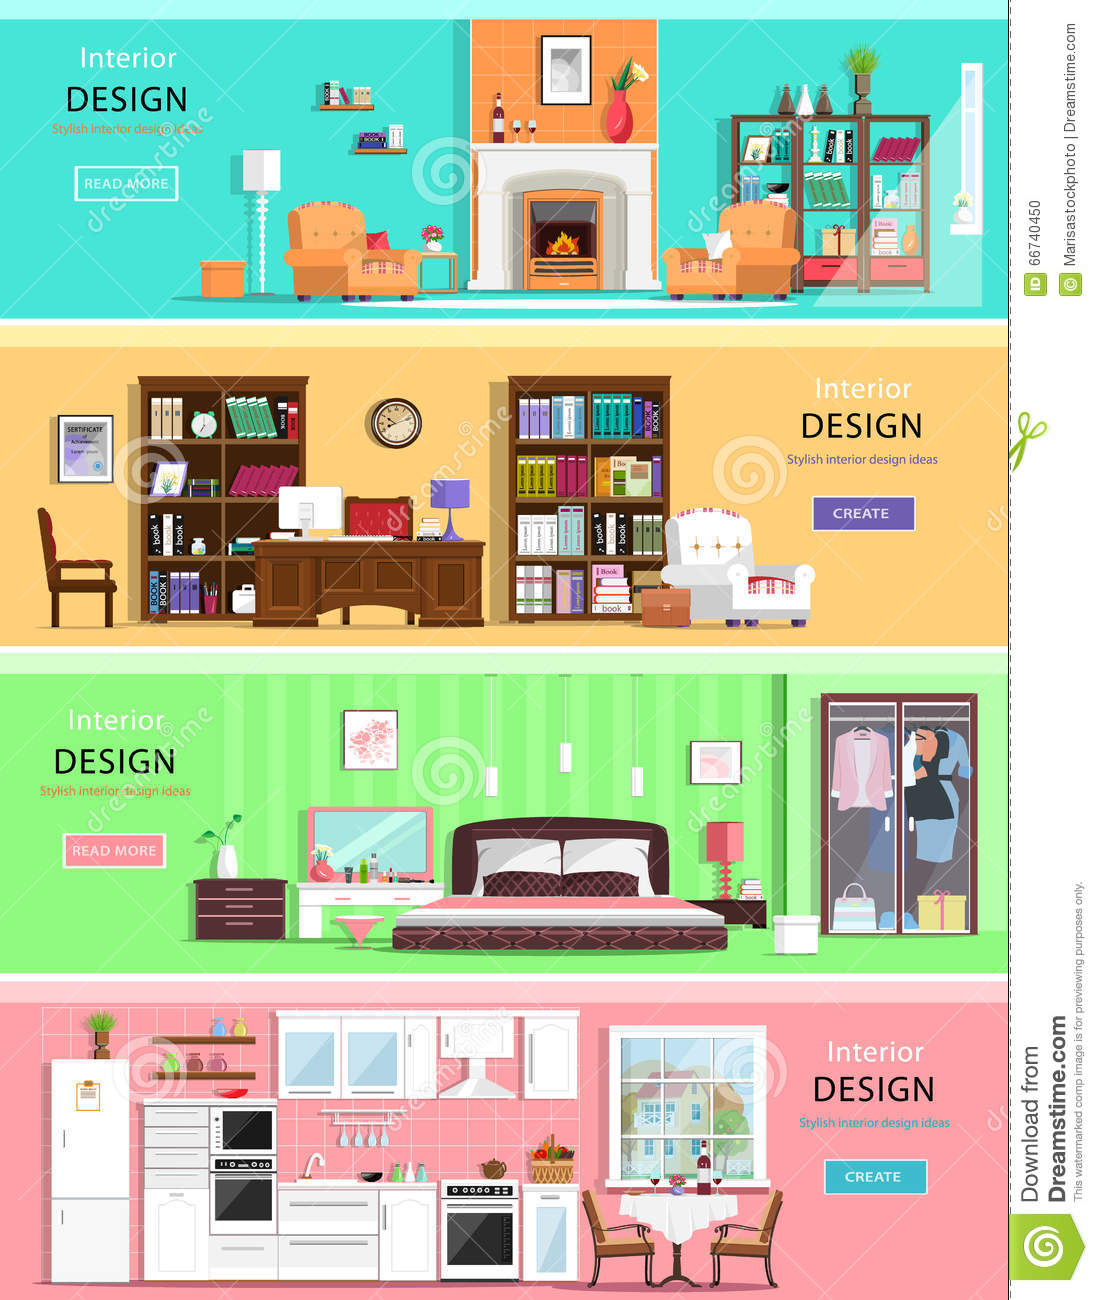 Kitchen Room Bedroom Set Of Colorful Vector Interior Design House Rooms With Furniture